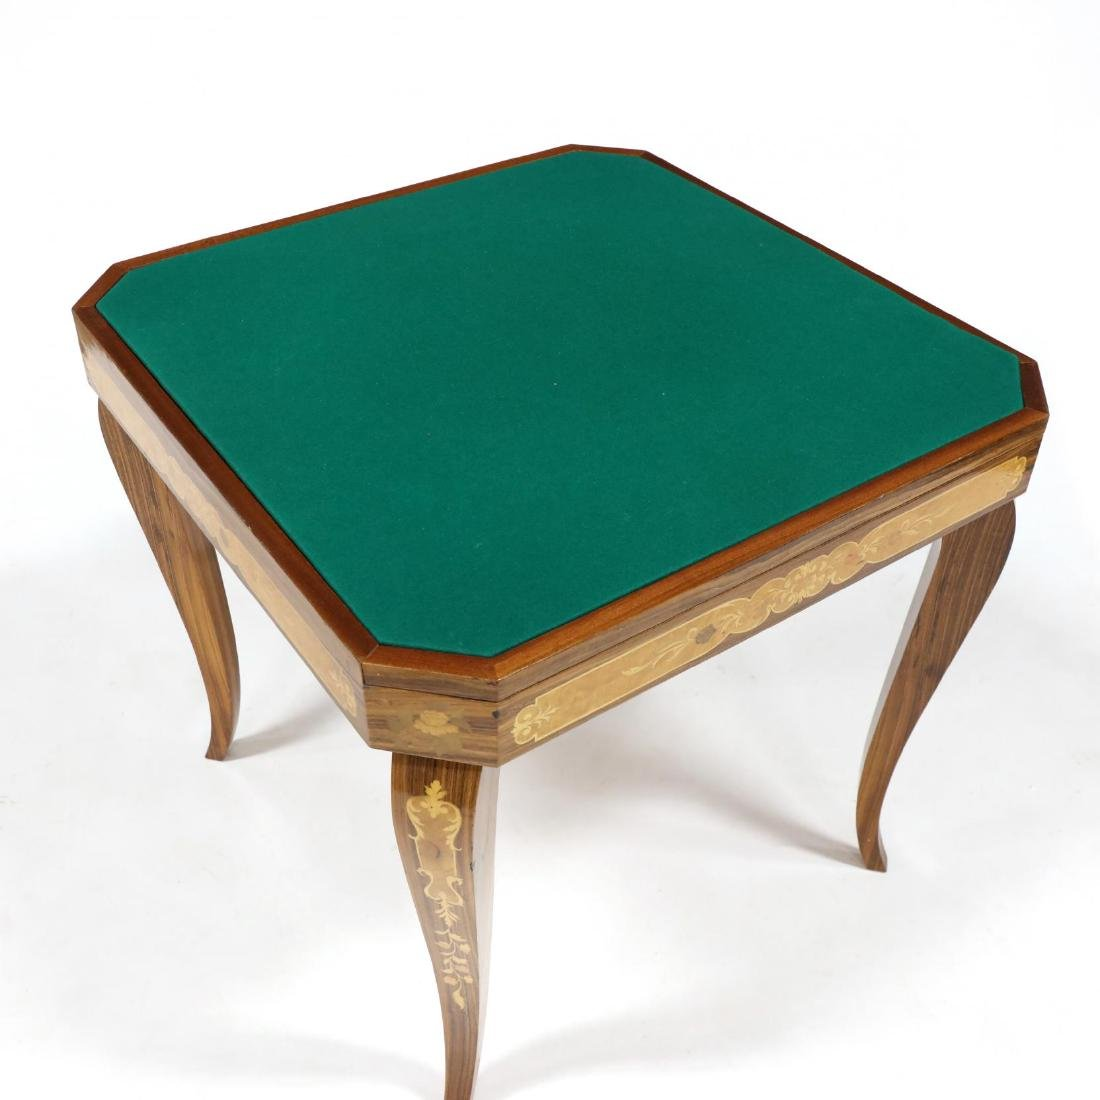 Italian Marquetry Inlaid Multi-Games Table - 6